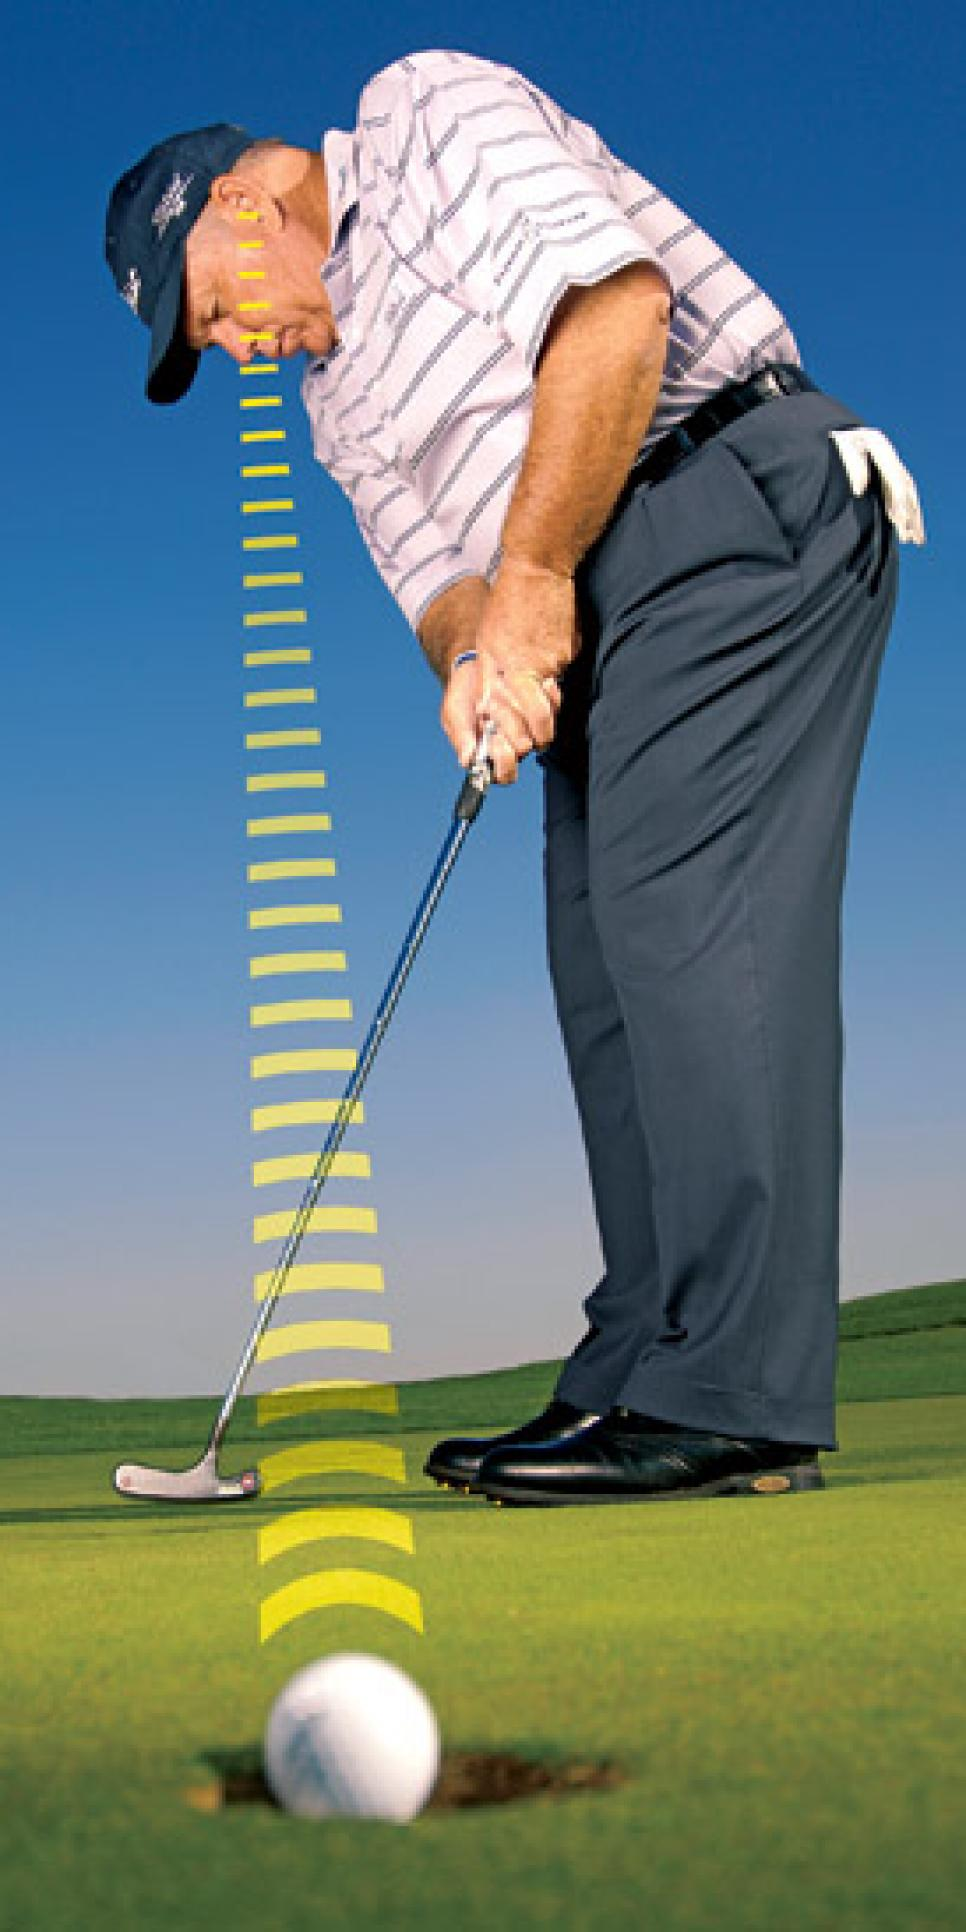 instruction-2007-02-inar01-butch-harmon-hear-putt.jpg